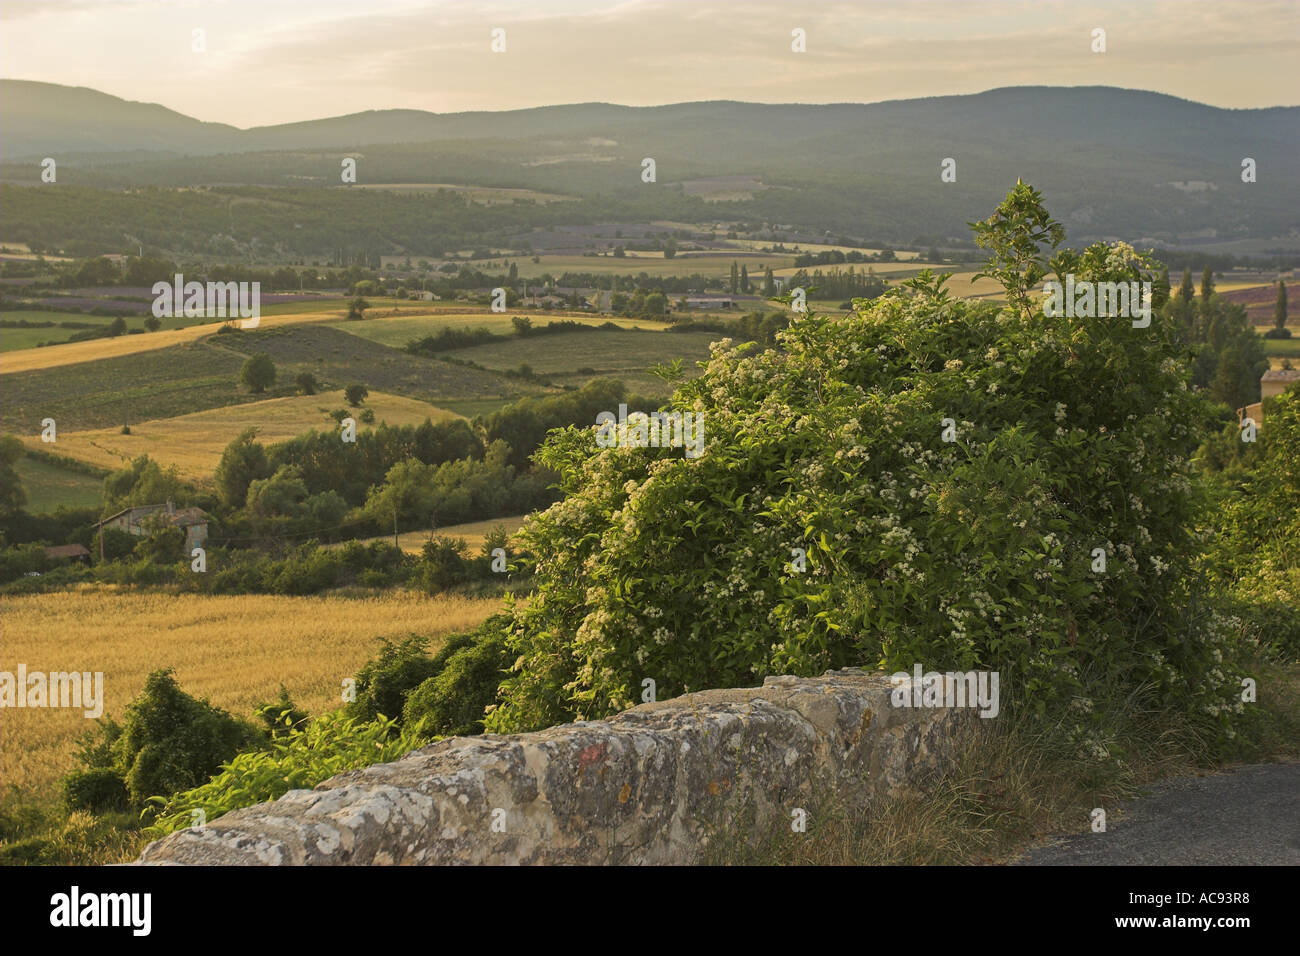 travelers-joy (Clematis vitalba), with cultural landscape, France, Provence - Stock Image